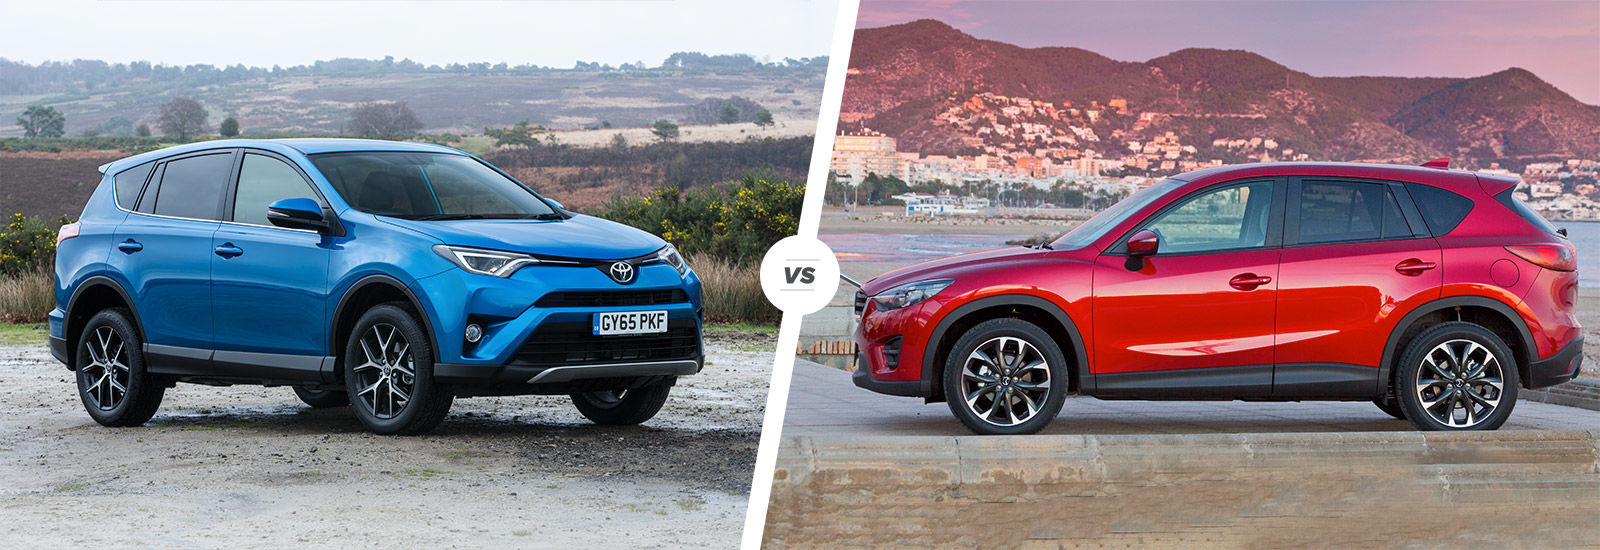 toyota rav4 vs mazda cx 5 compared carwow. Black Bedroom Furniture Sets. Home Design Ideas